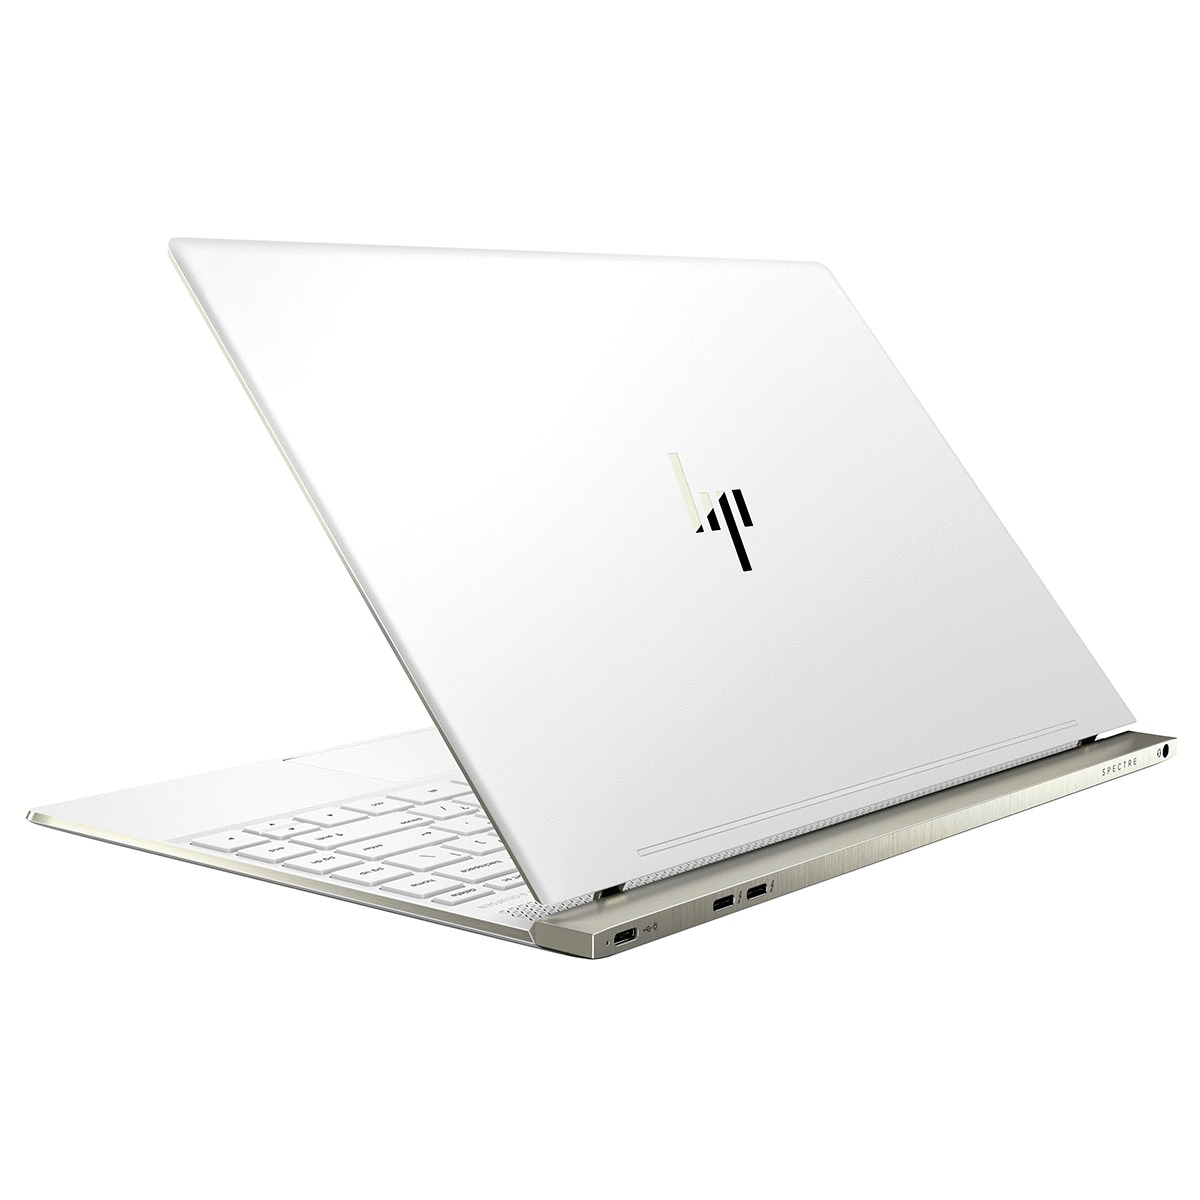 LAPTOP HP 13-AF002LA (1ZW20LA-CORE I7, RAM 8GB)